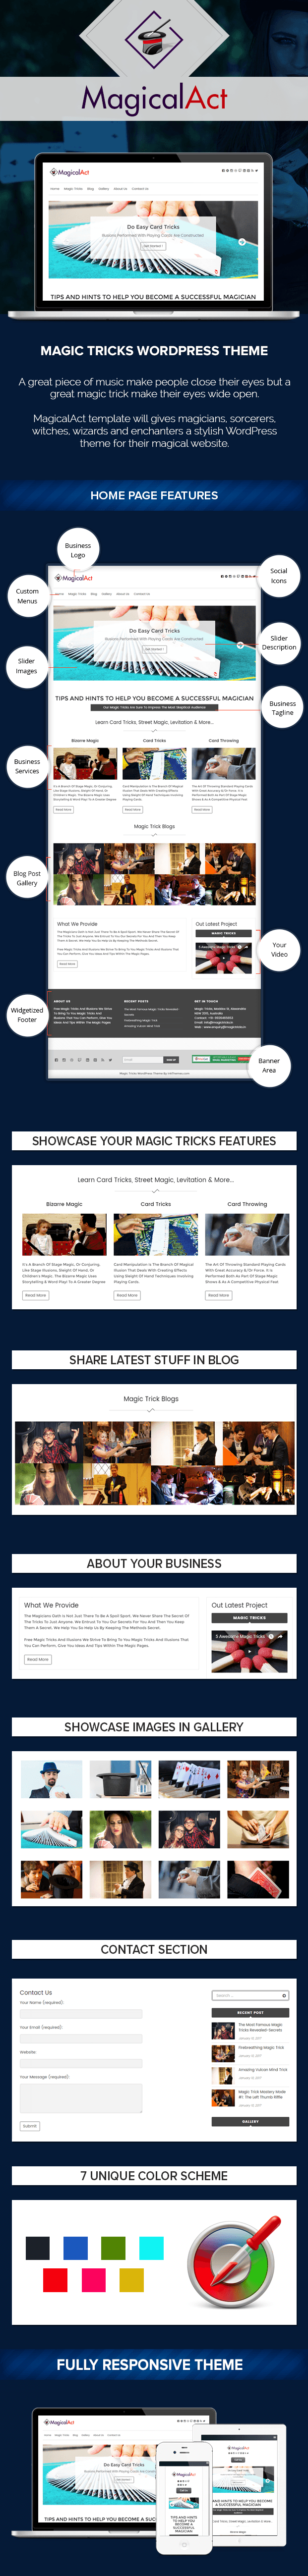 Magic Tricks WordPress Theme